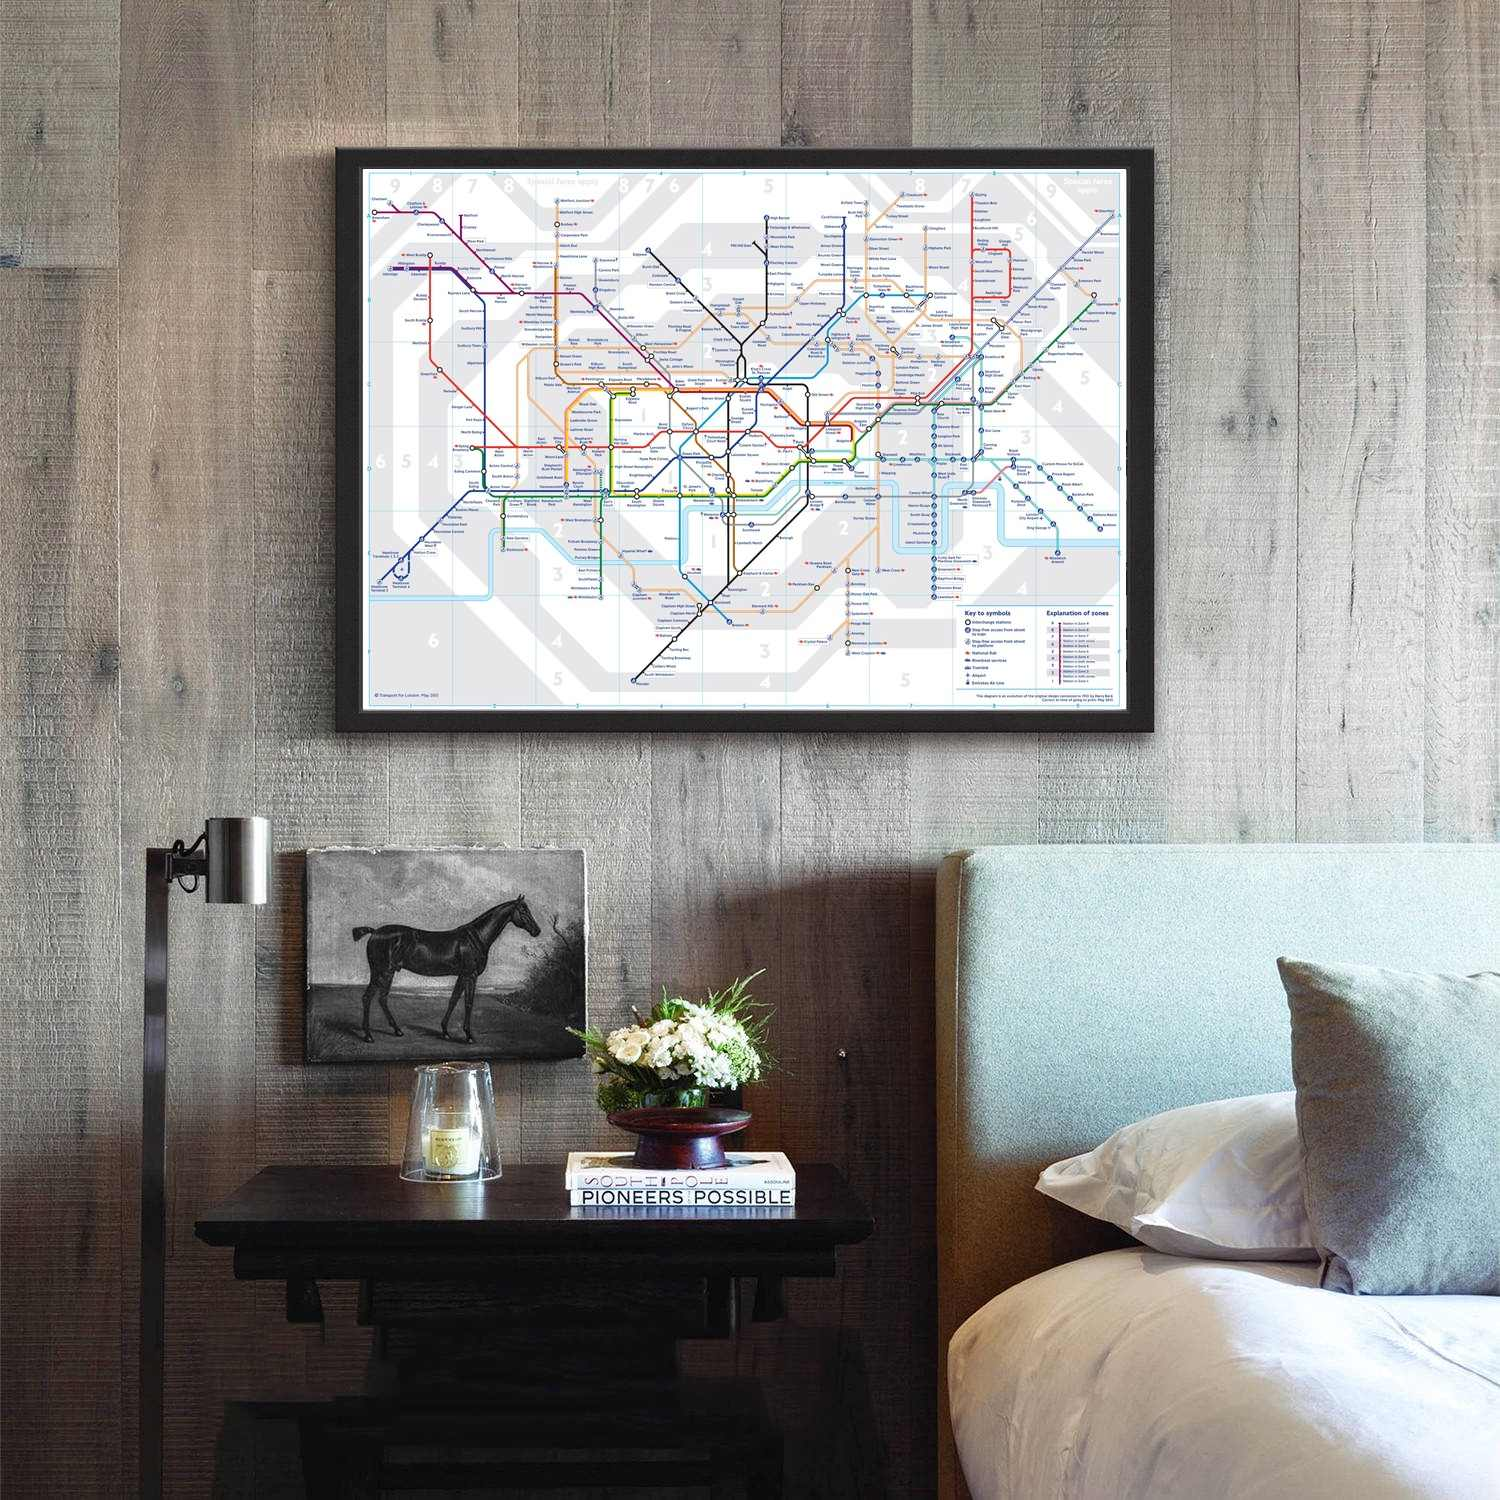 Subway Map Wall Art Wall Art Stickers Wall Decal Huge Underground Tube Map.London Tube Map Movie Wall Art Paint Wall Decor Canvas Prints Canvas Art Poster Oil Paintings No Frame